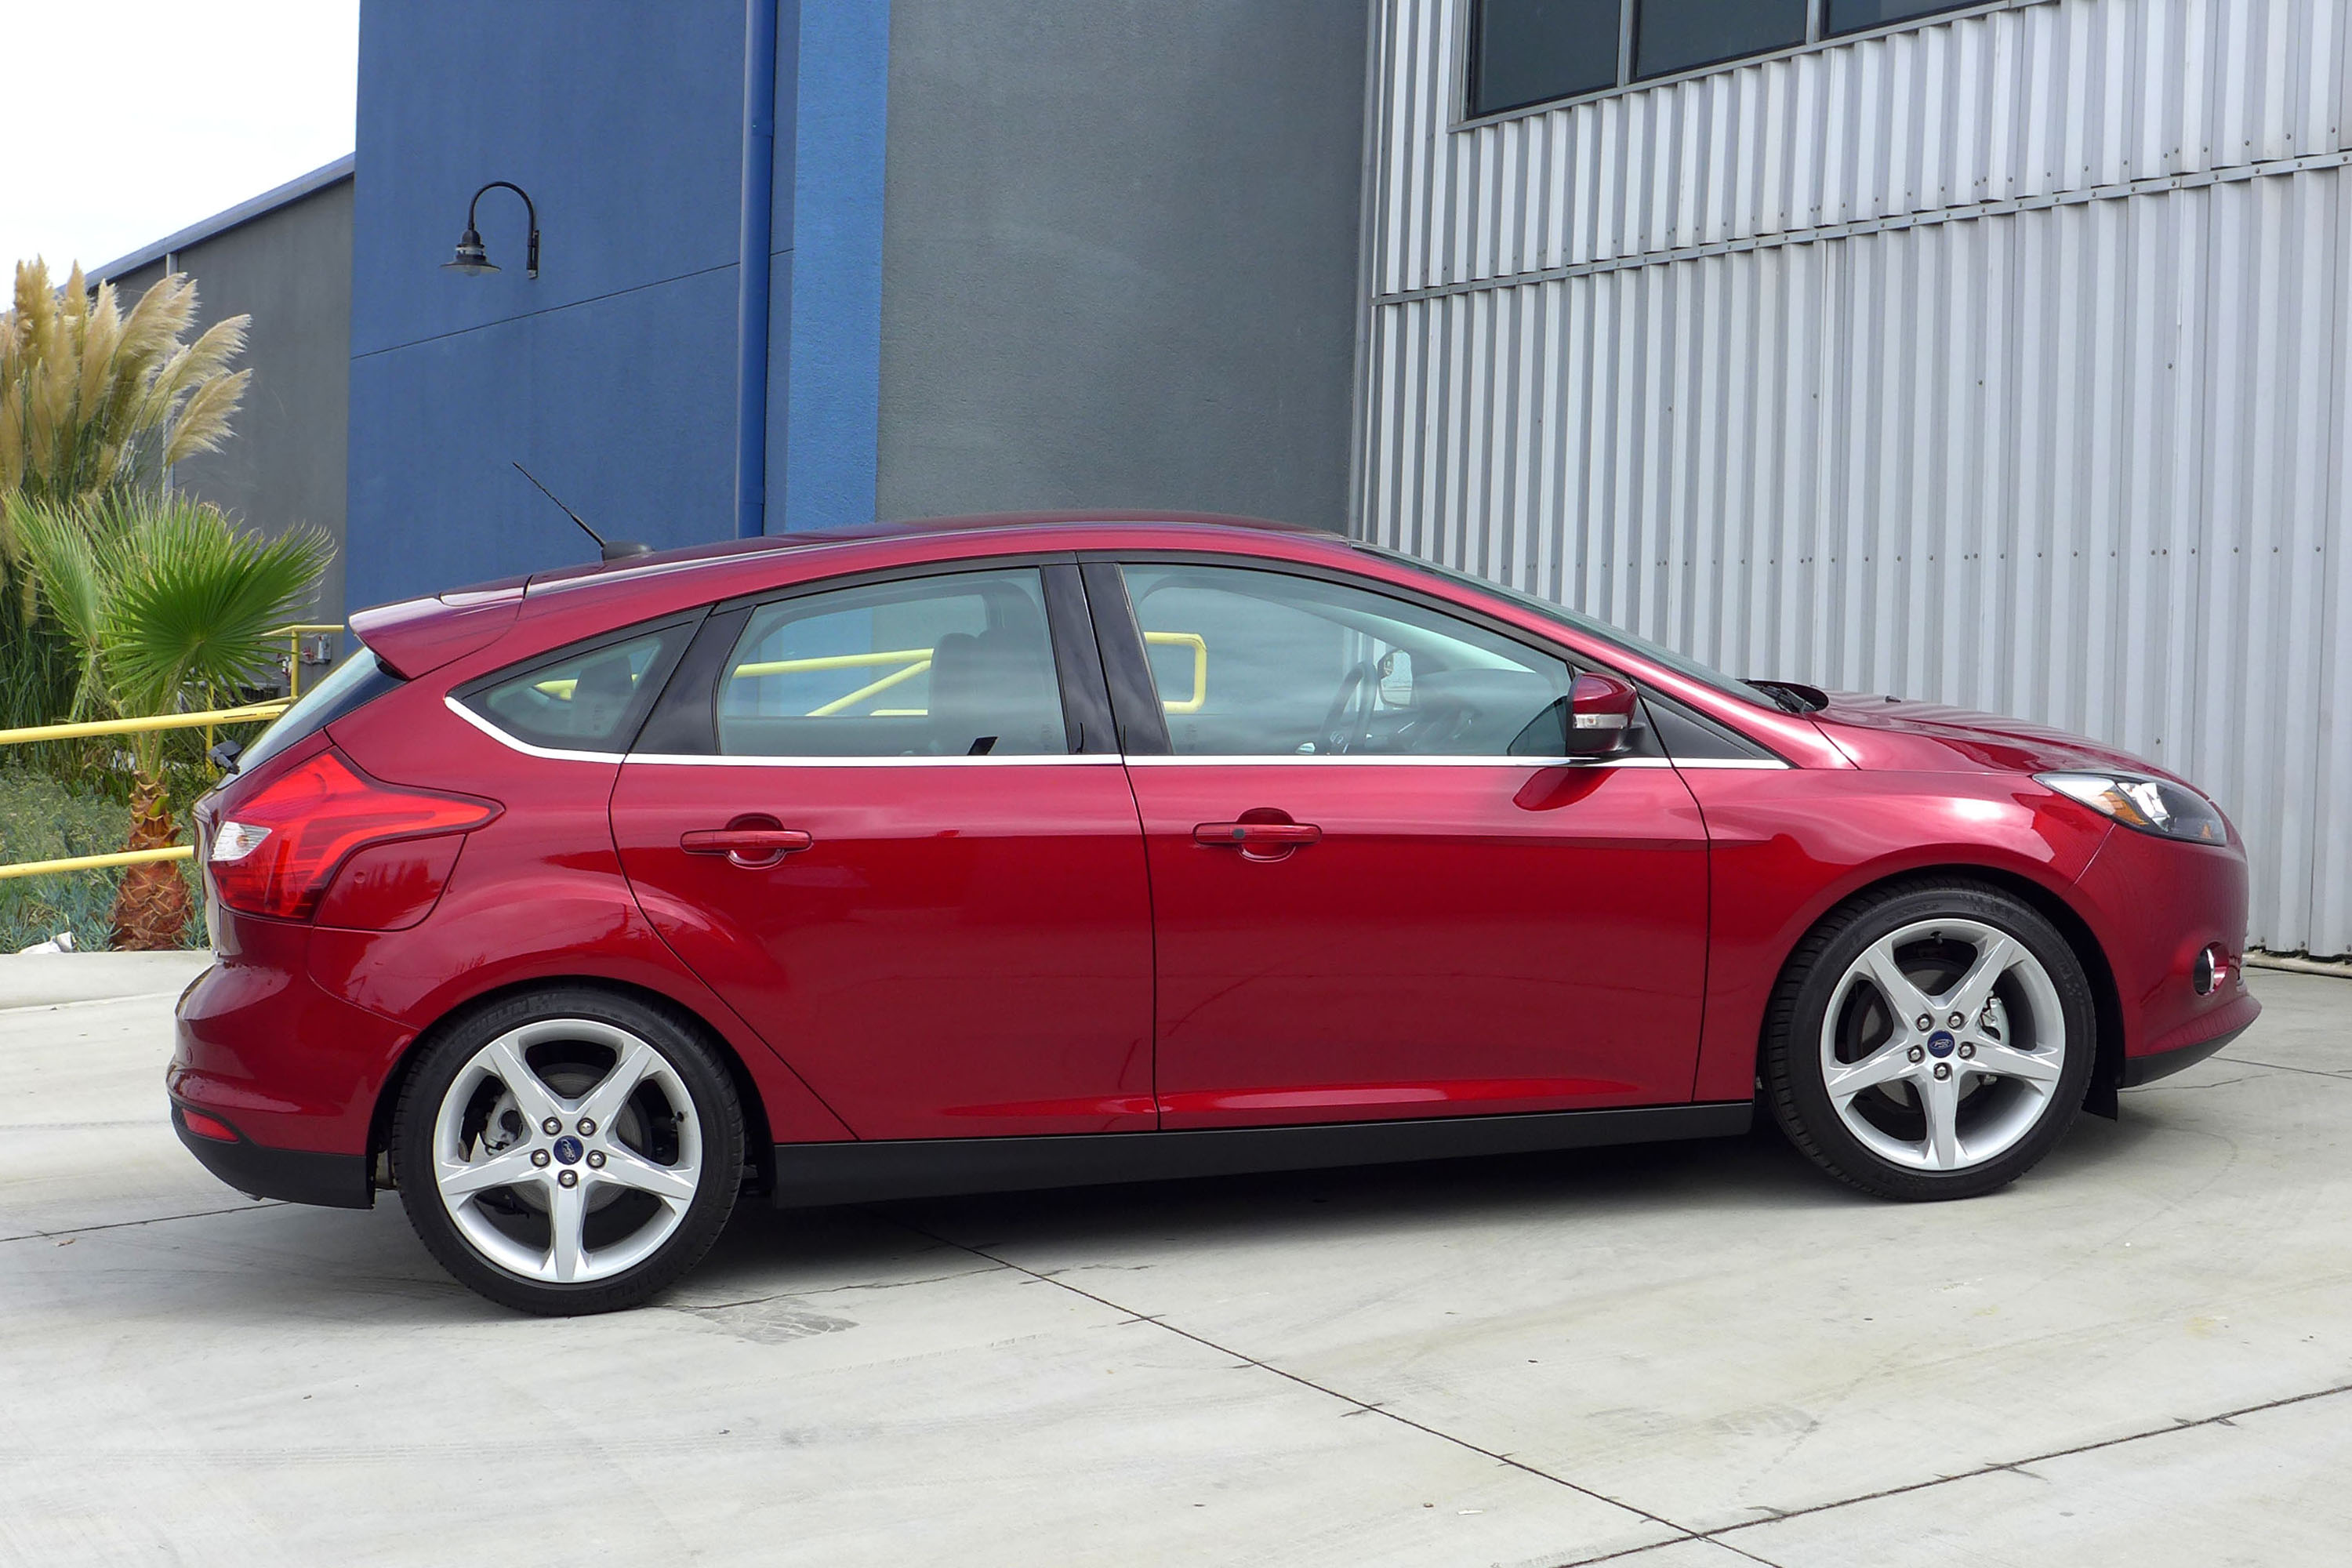 Ford Focus Hatchback 2008